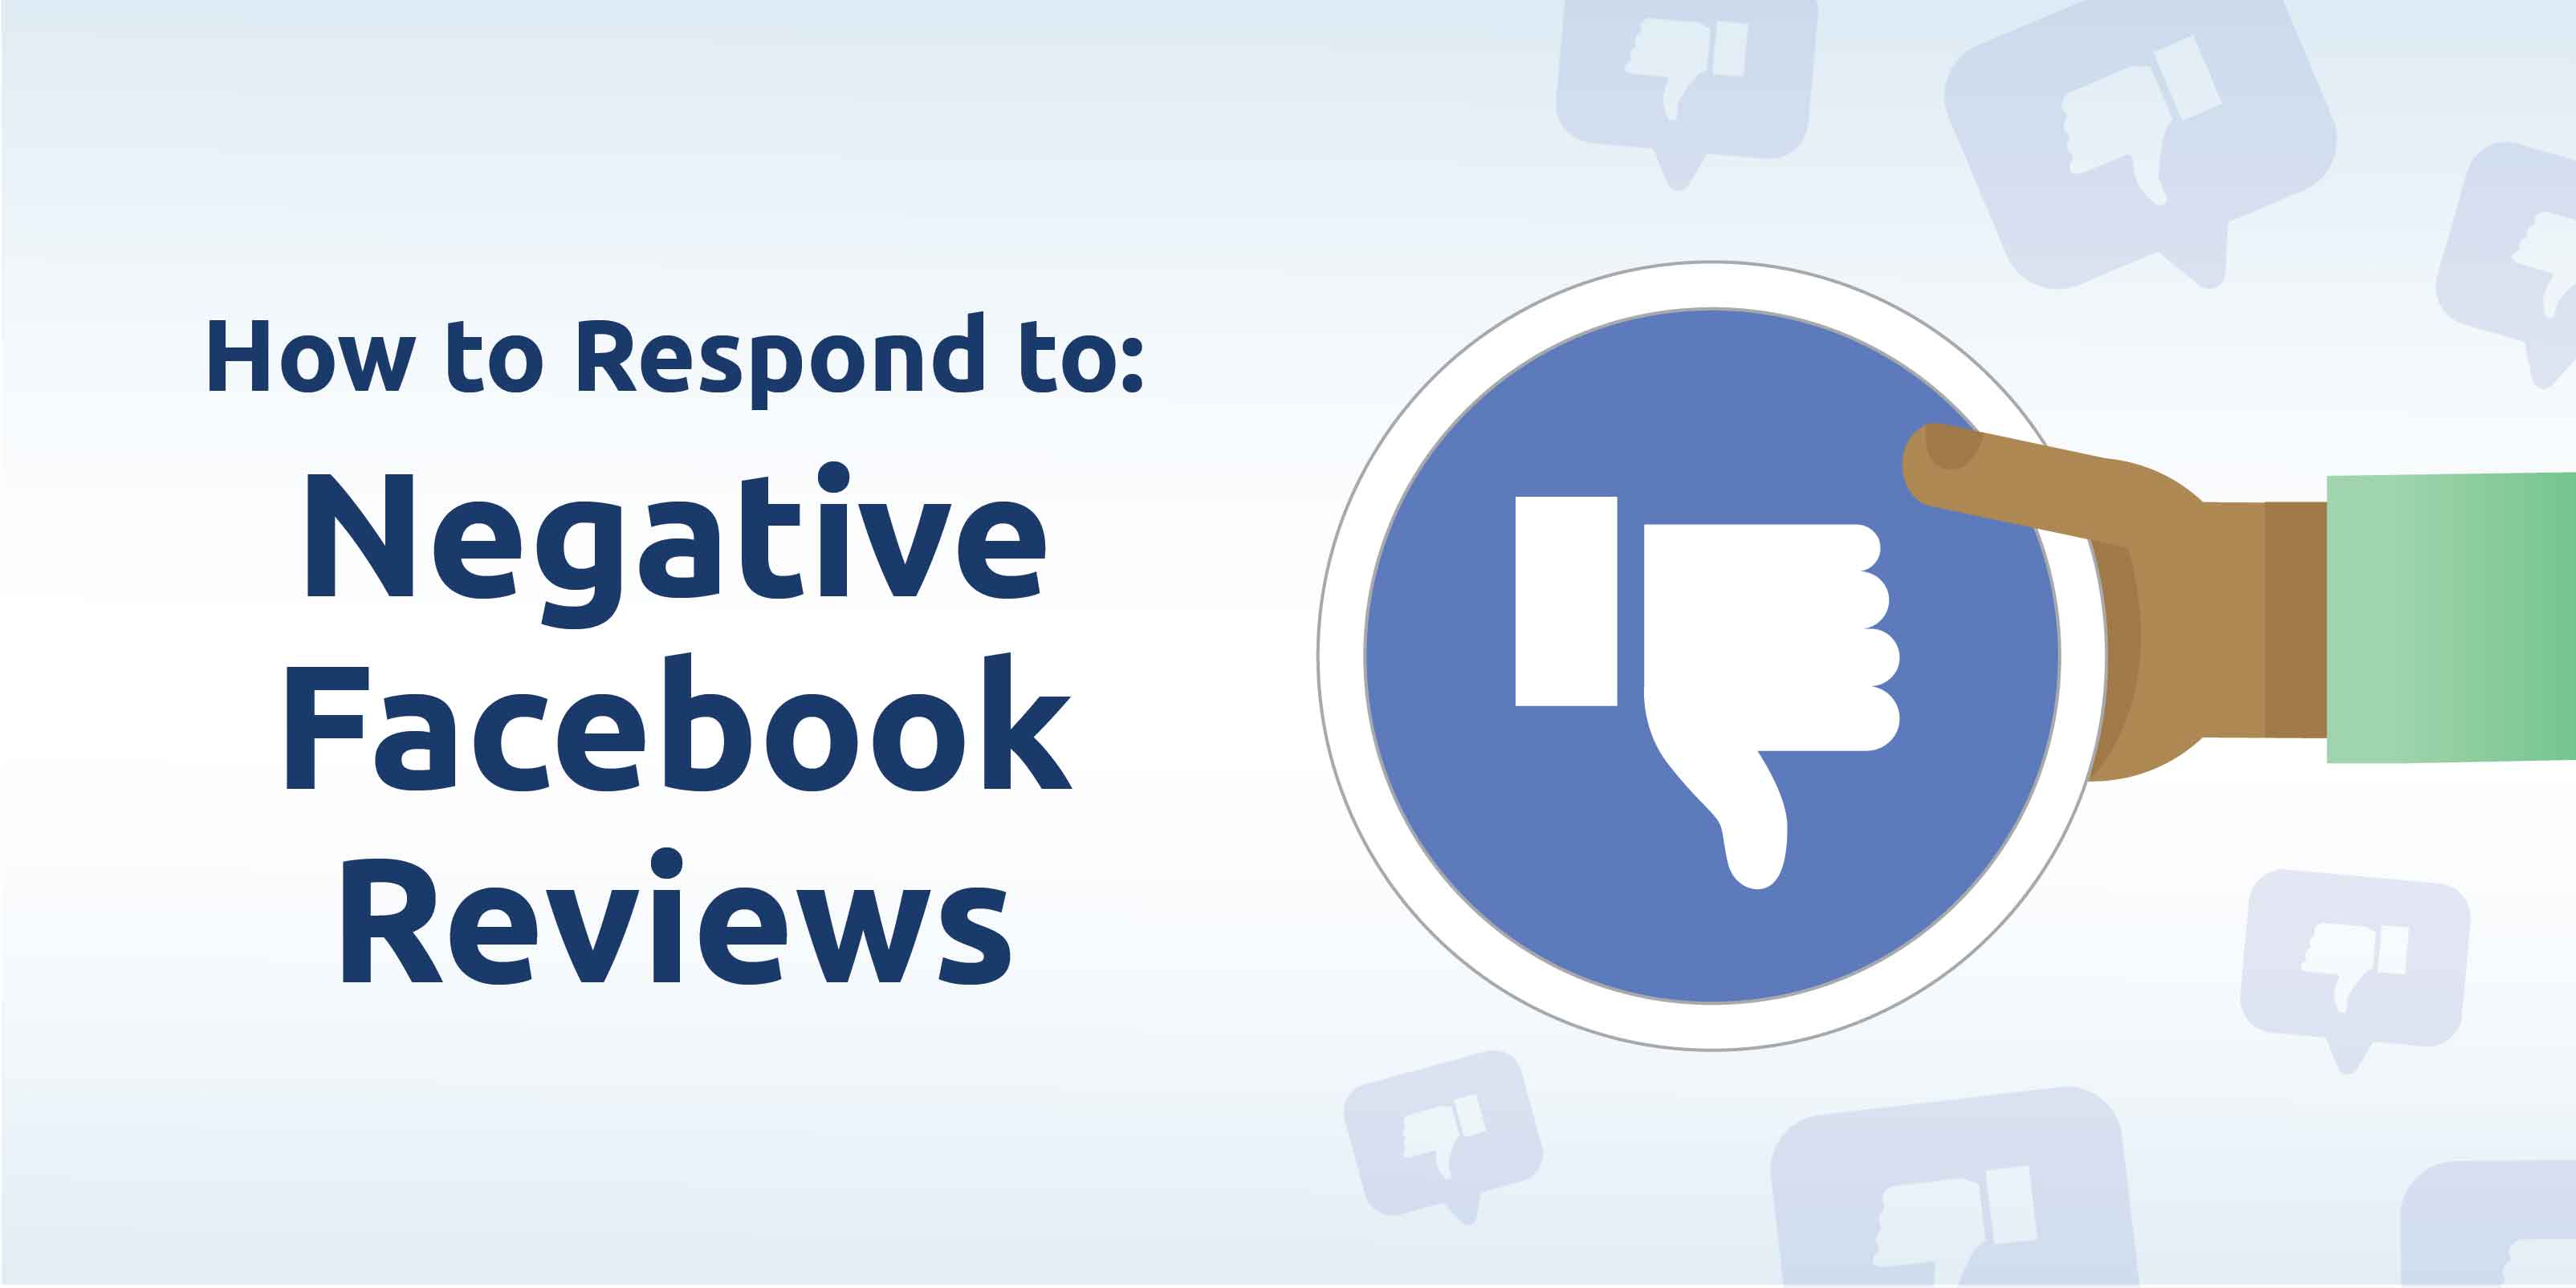 How to Respond to Negative Facebook Reviews